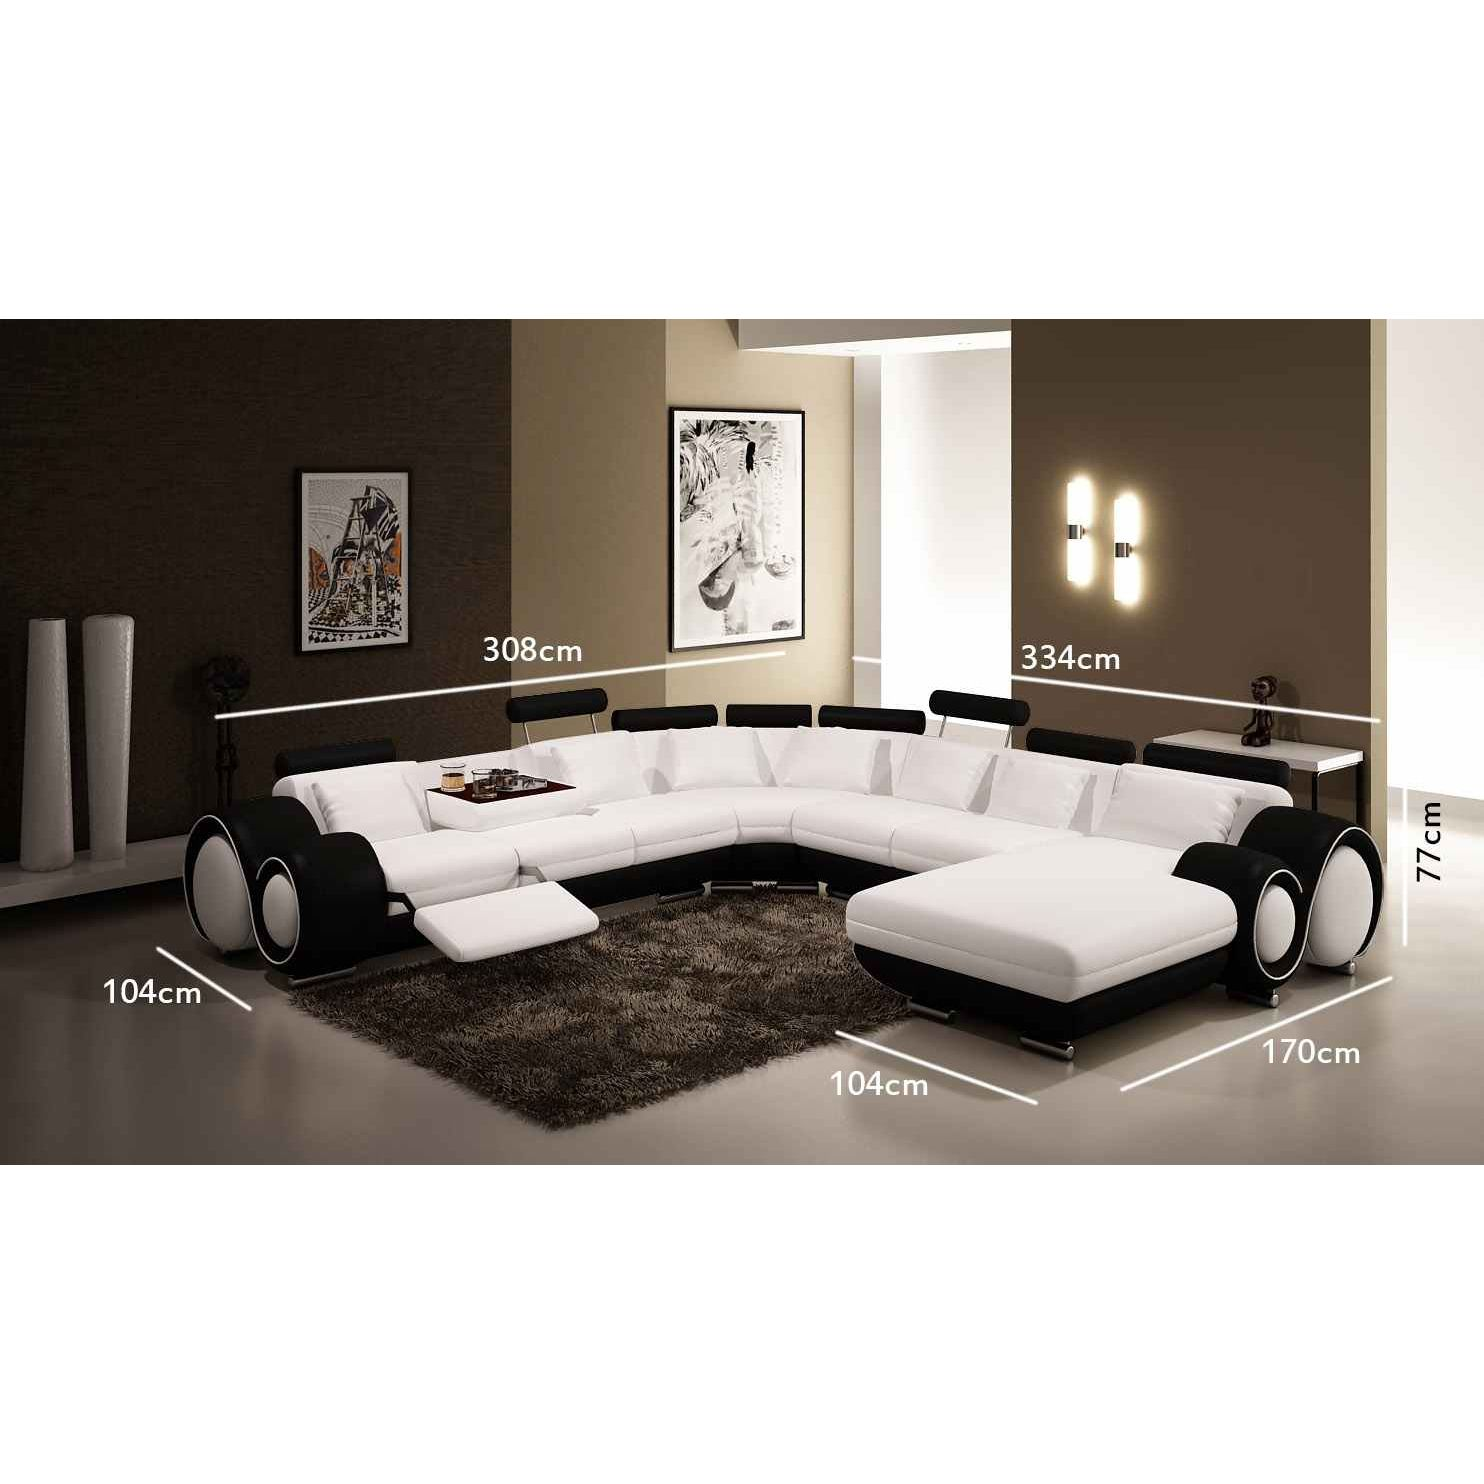 deco in paris canape panoramique cuir blanc et noir oslo. Black Bedroom Furniture Sets. Home Design Ideas